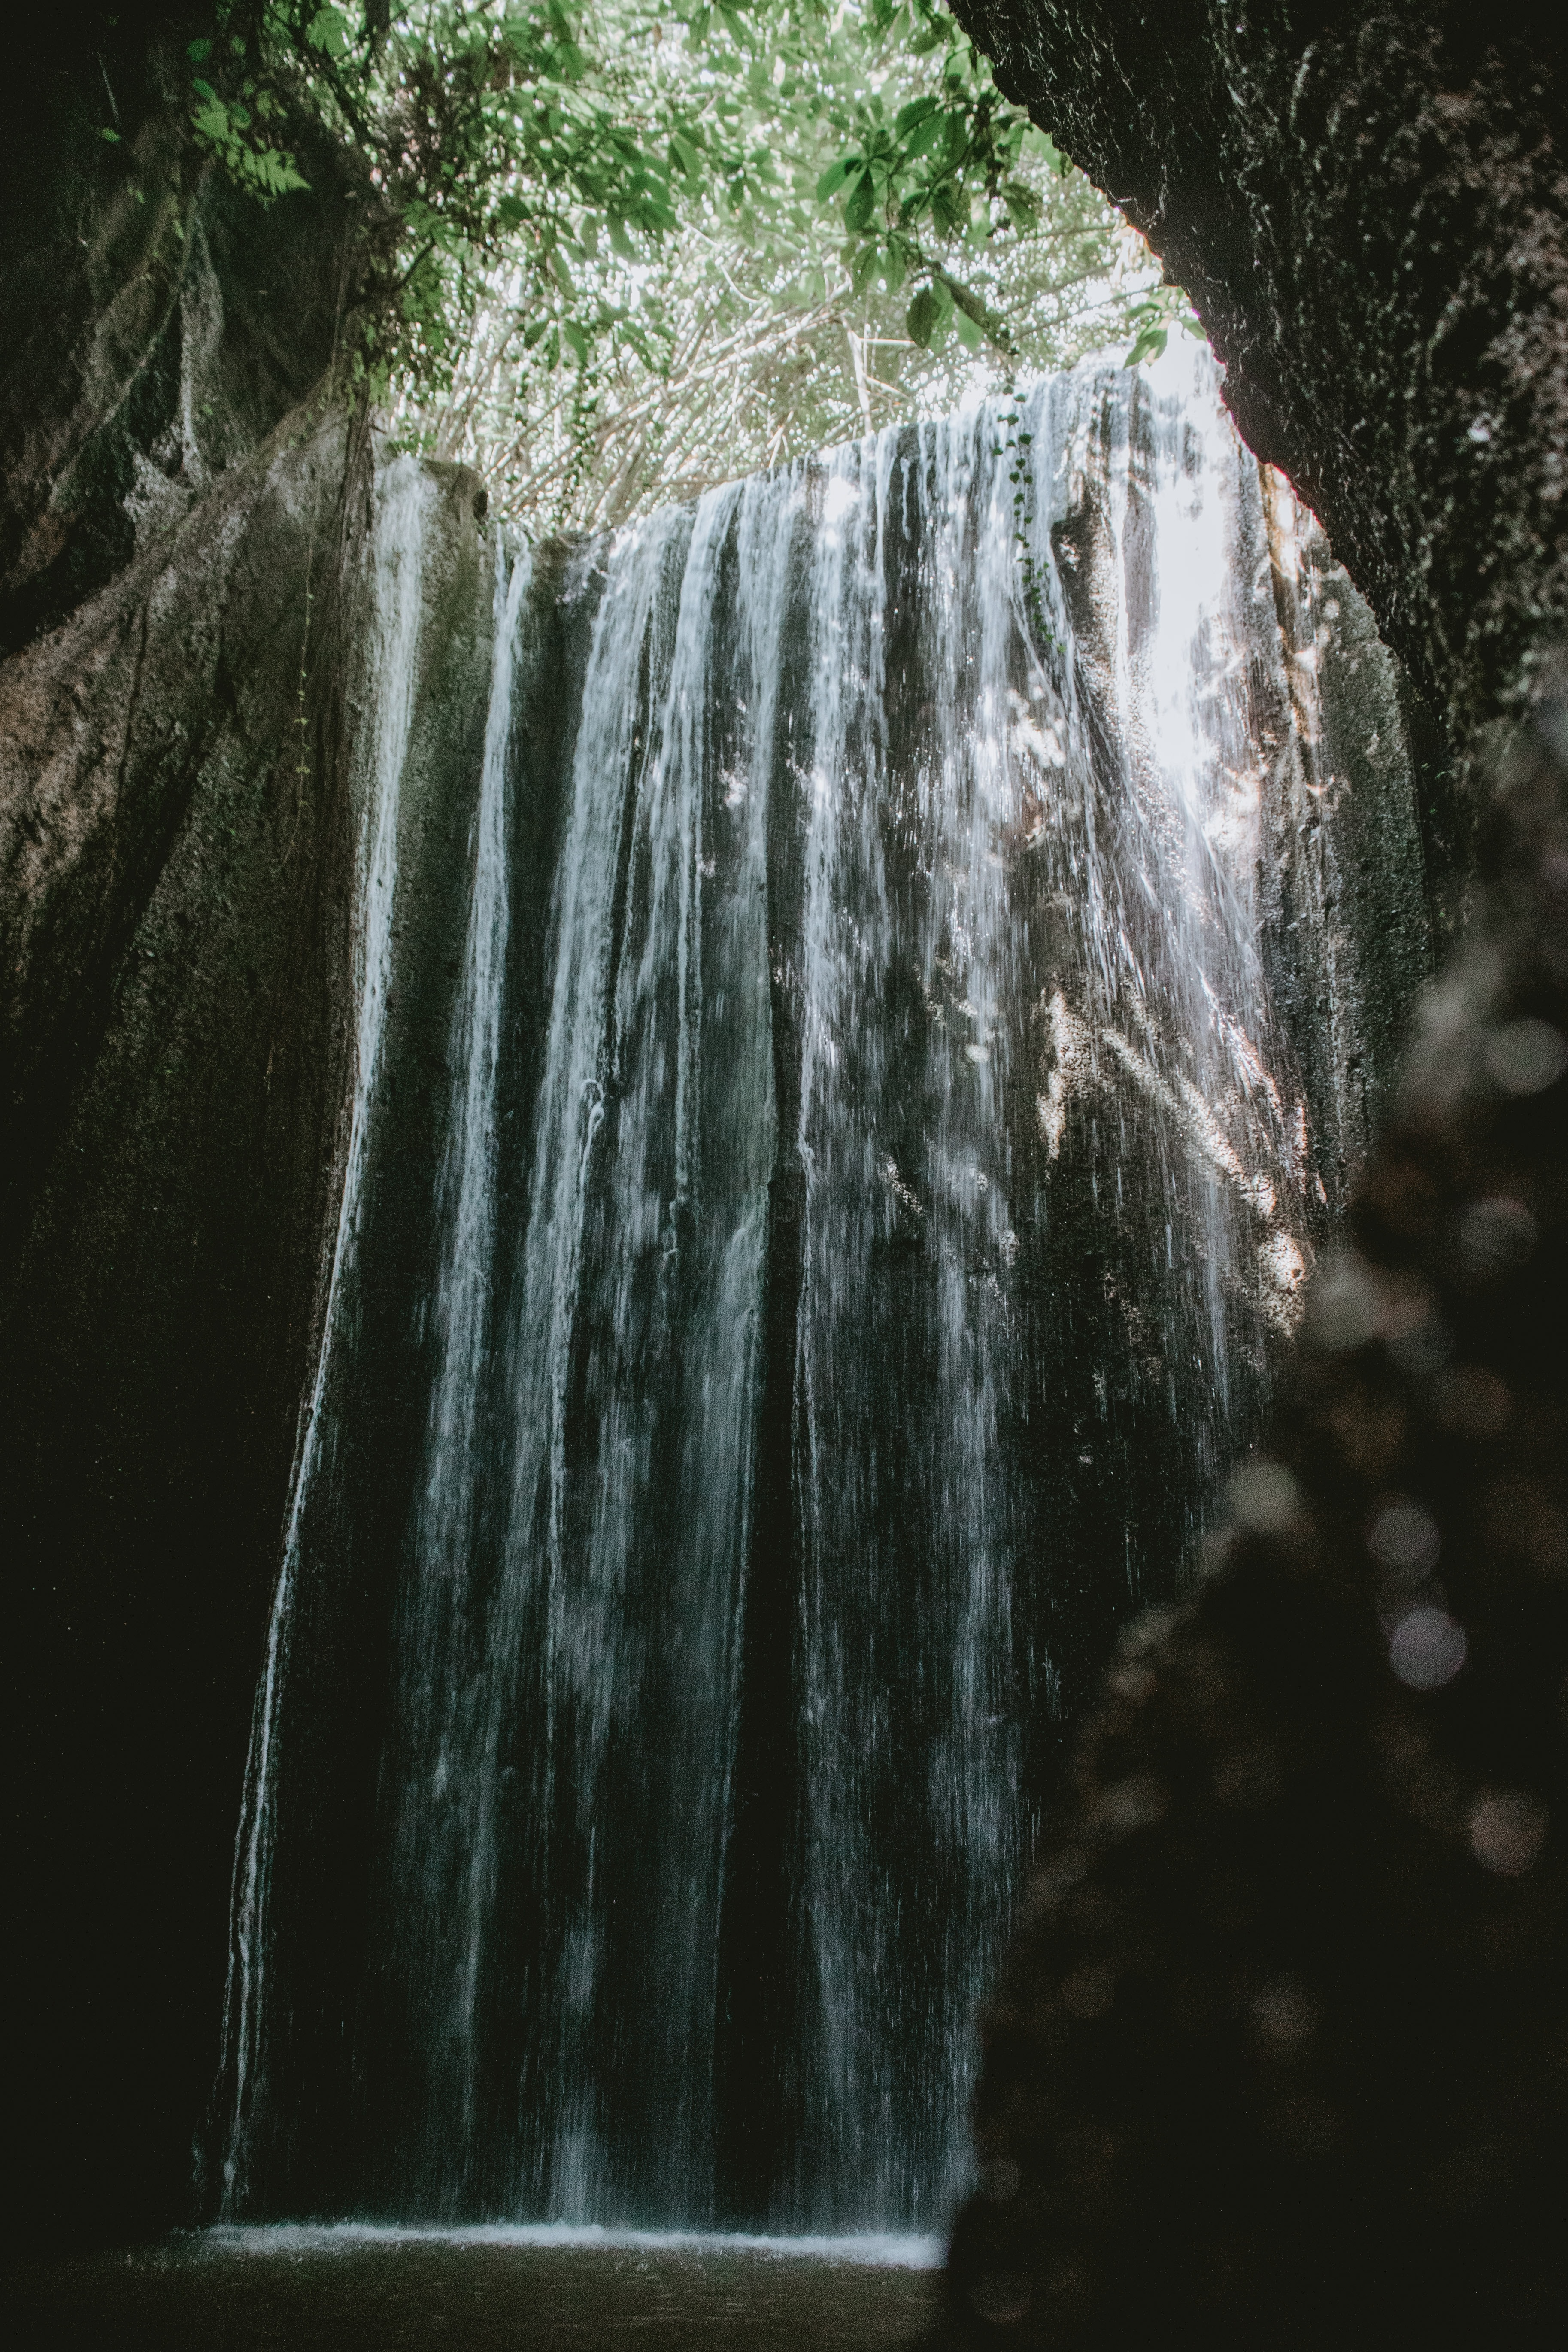 What to expect at Tukad Cepung Waterfall?